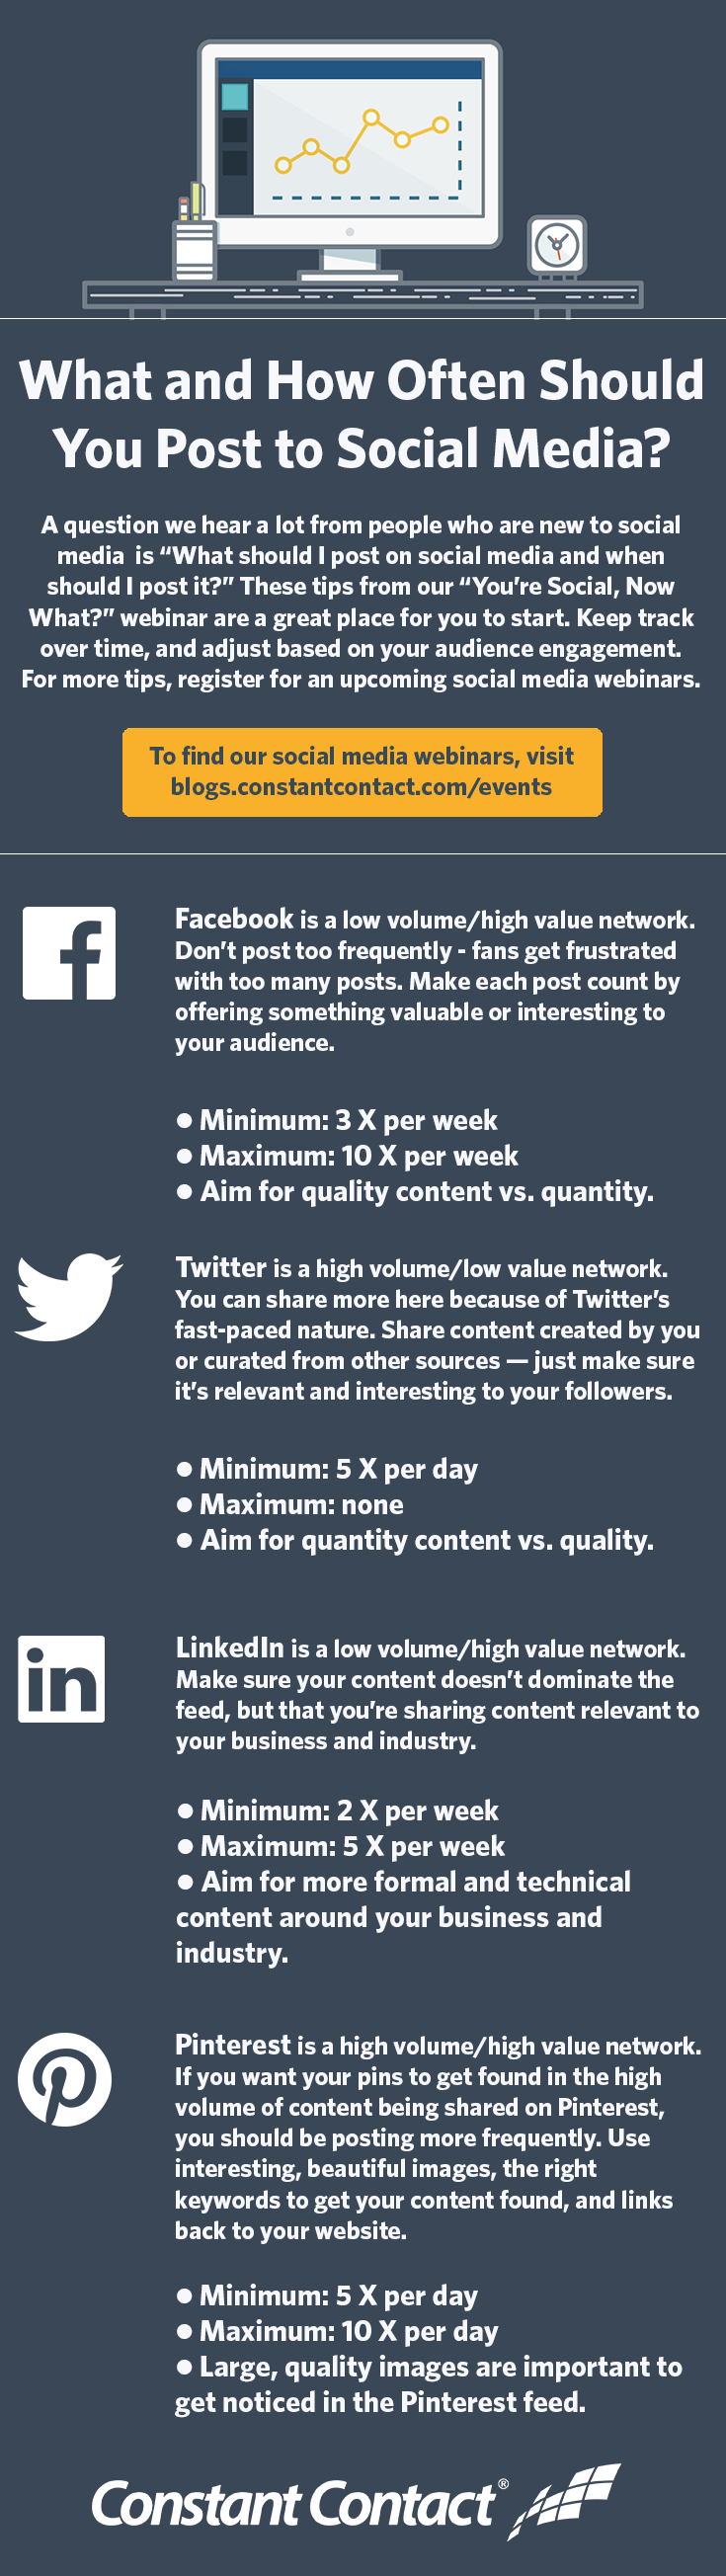 Social Media Posting Frequency Infographic